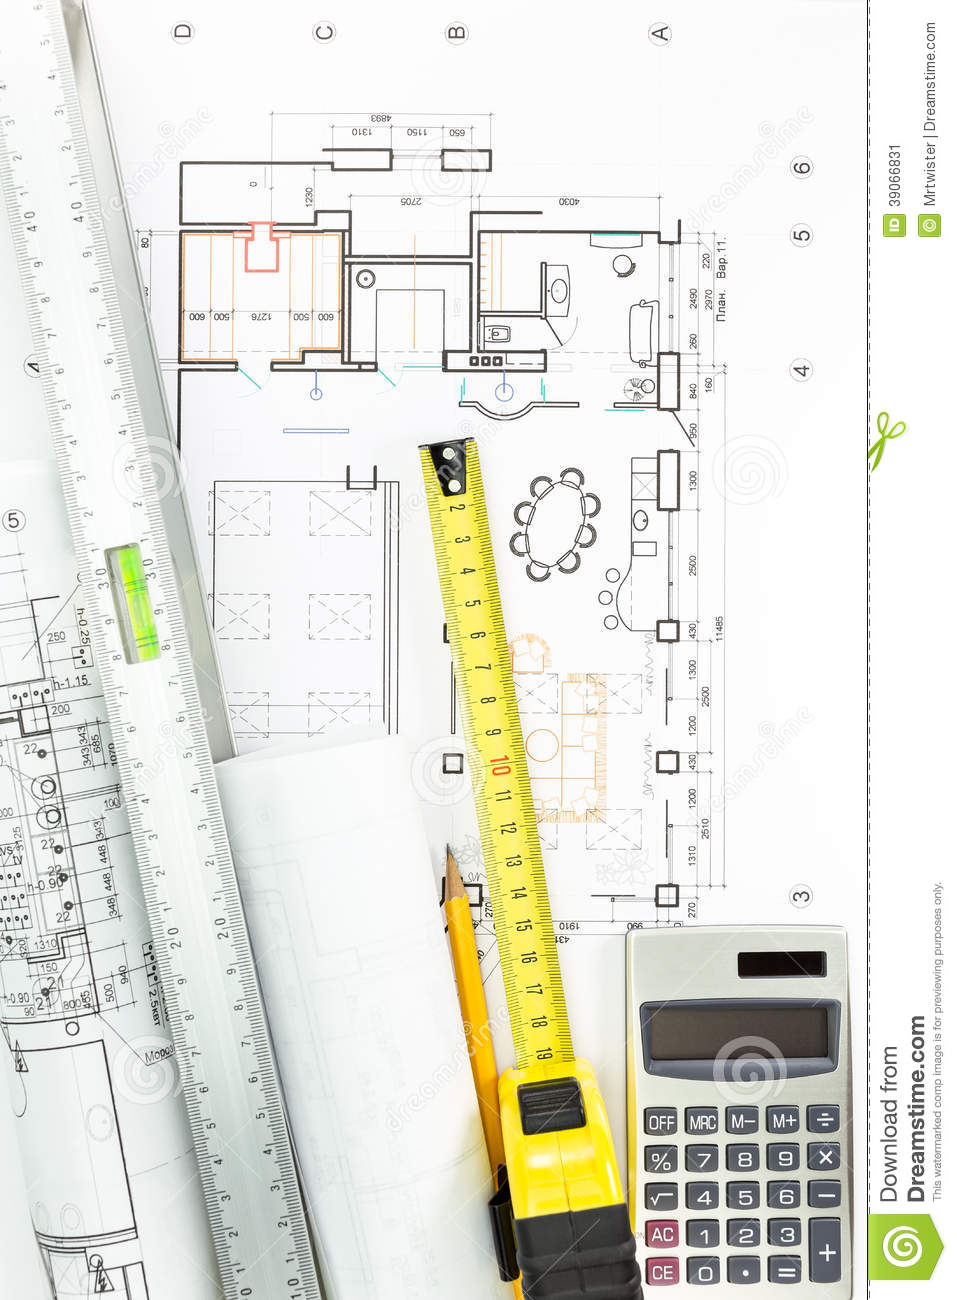 Architectural drawing detail and measurement tools stock Building design tool